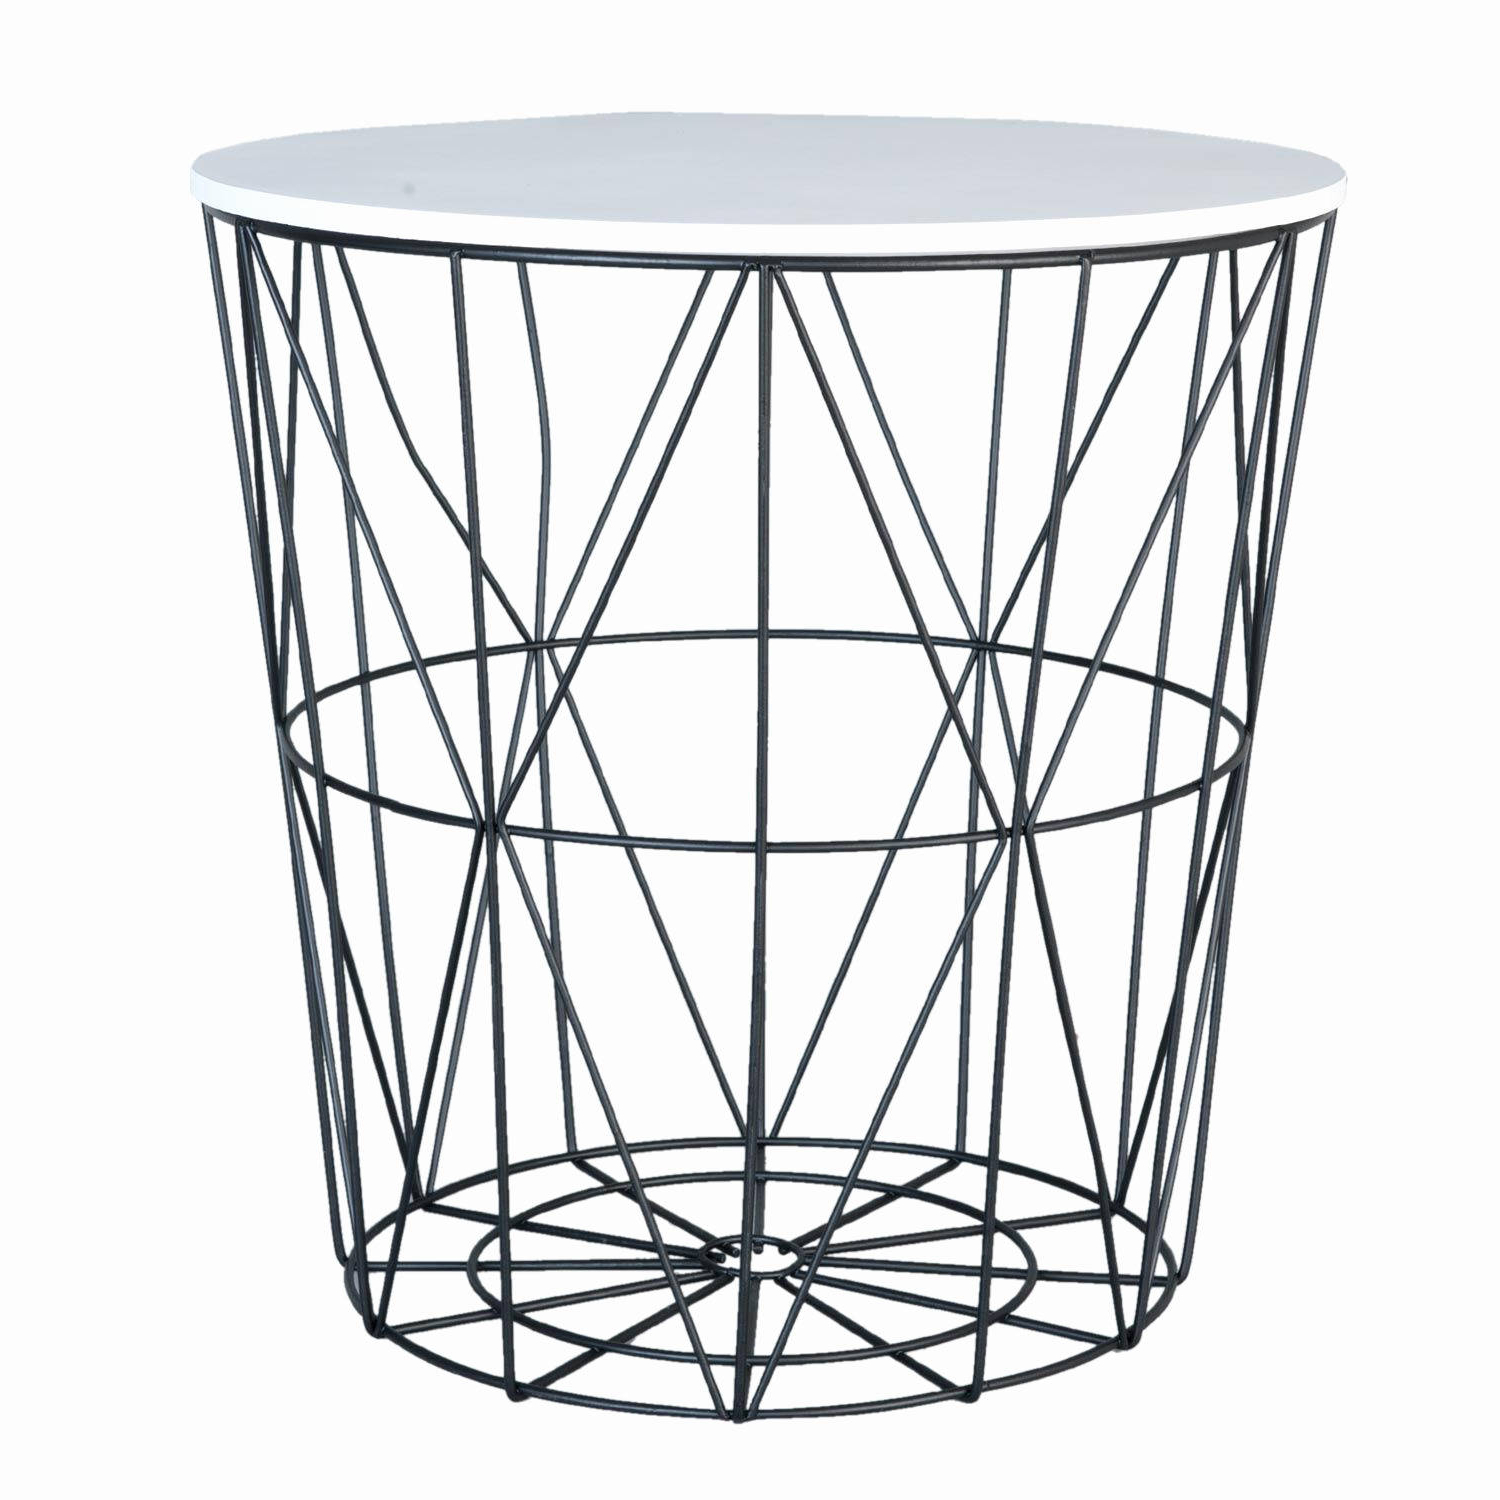 Fashionable White Coffee Table Black Legs Awesome White Black Geometric Side For Black Wire Coffee Tables (View 12 of 20)